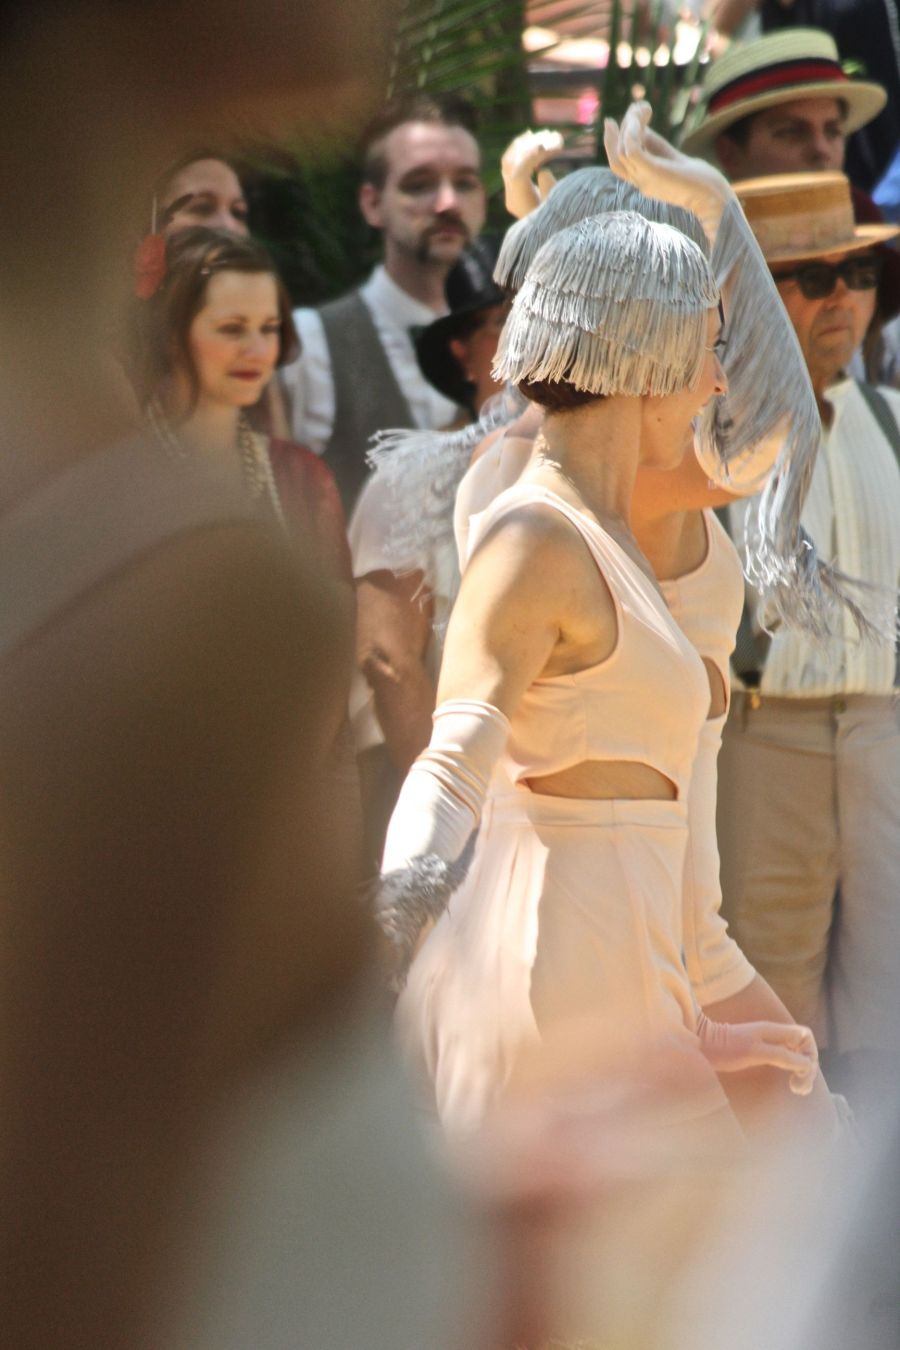 new york city governor's island jazz age lawn party august 16 party people dreamland follies 3